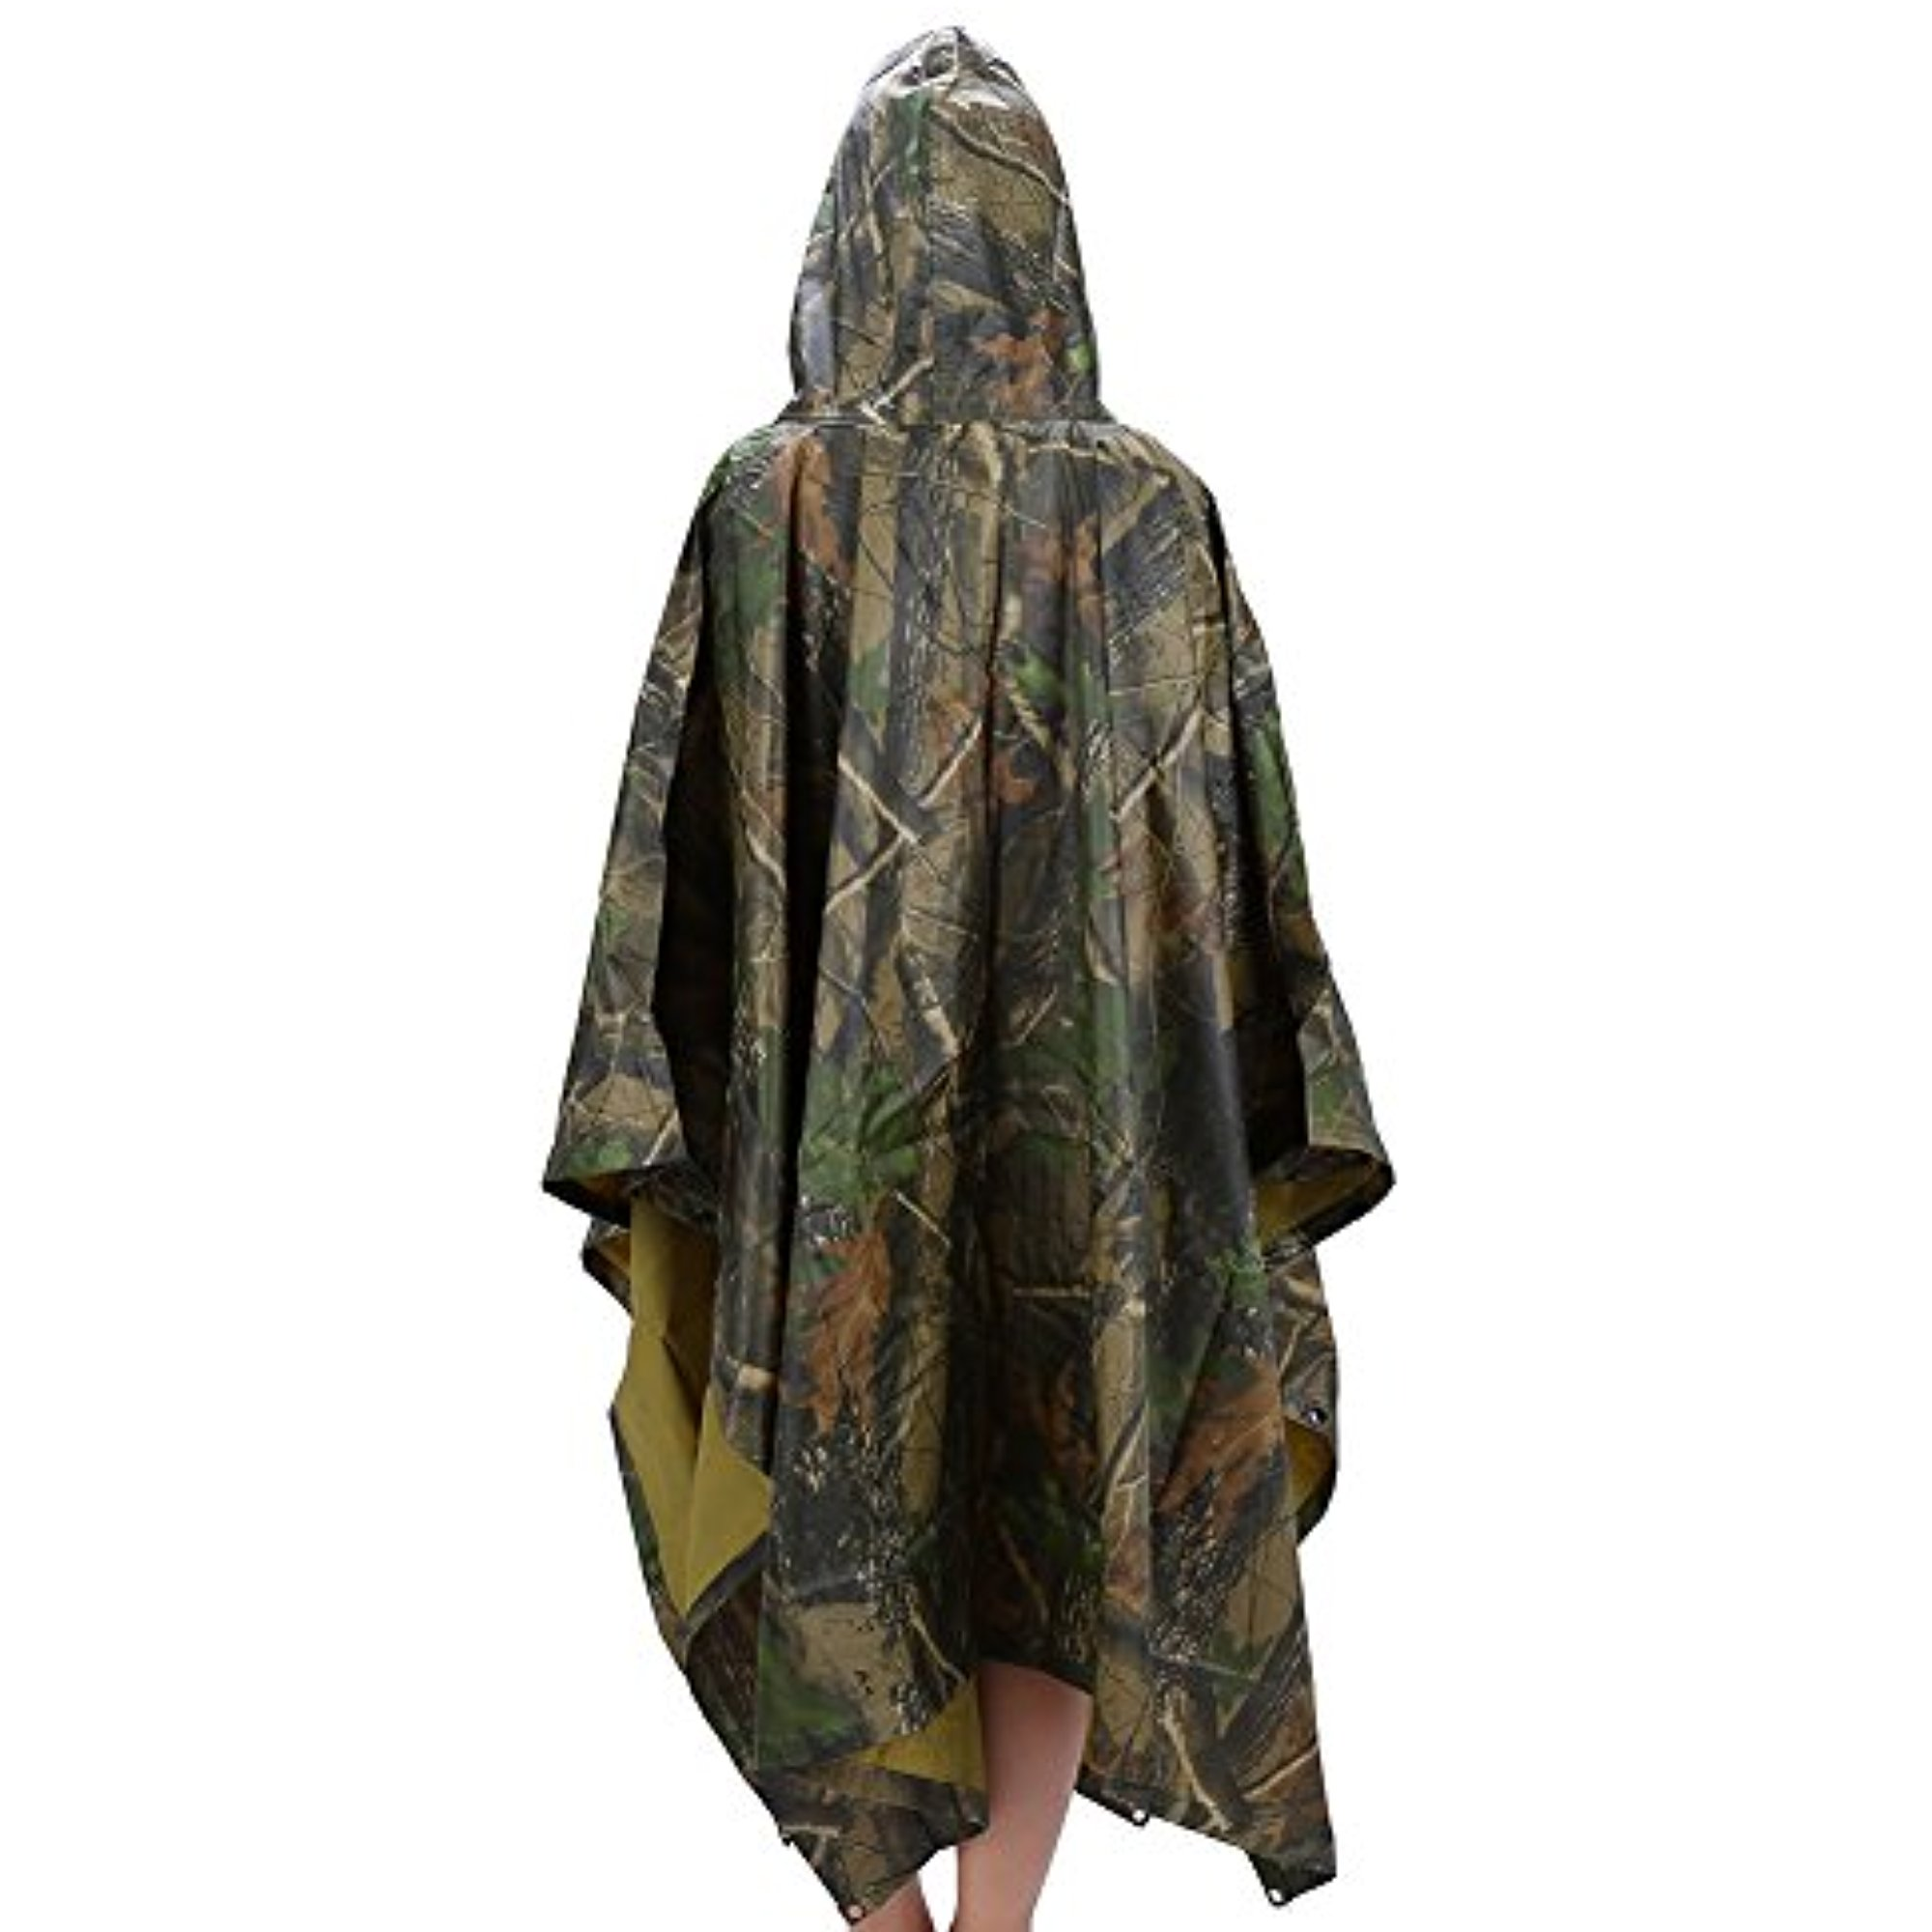 "Multi-Use Rain Poncho, 55"" x 90"" Waterproof Ripstop Hooded Rainwear Rain Coat Slicker for Adults Hunting Camping Emergency,Maple... by"